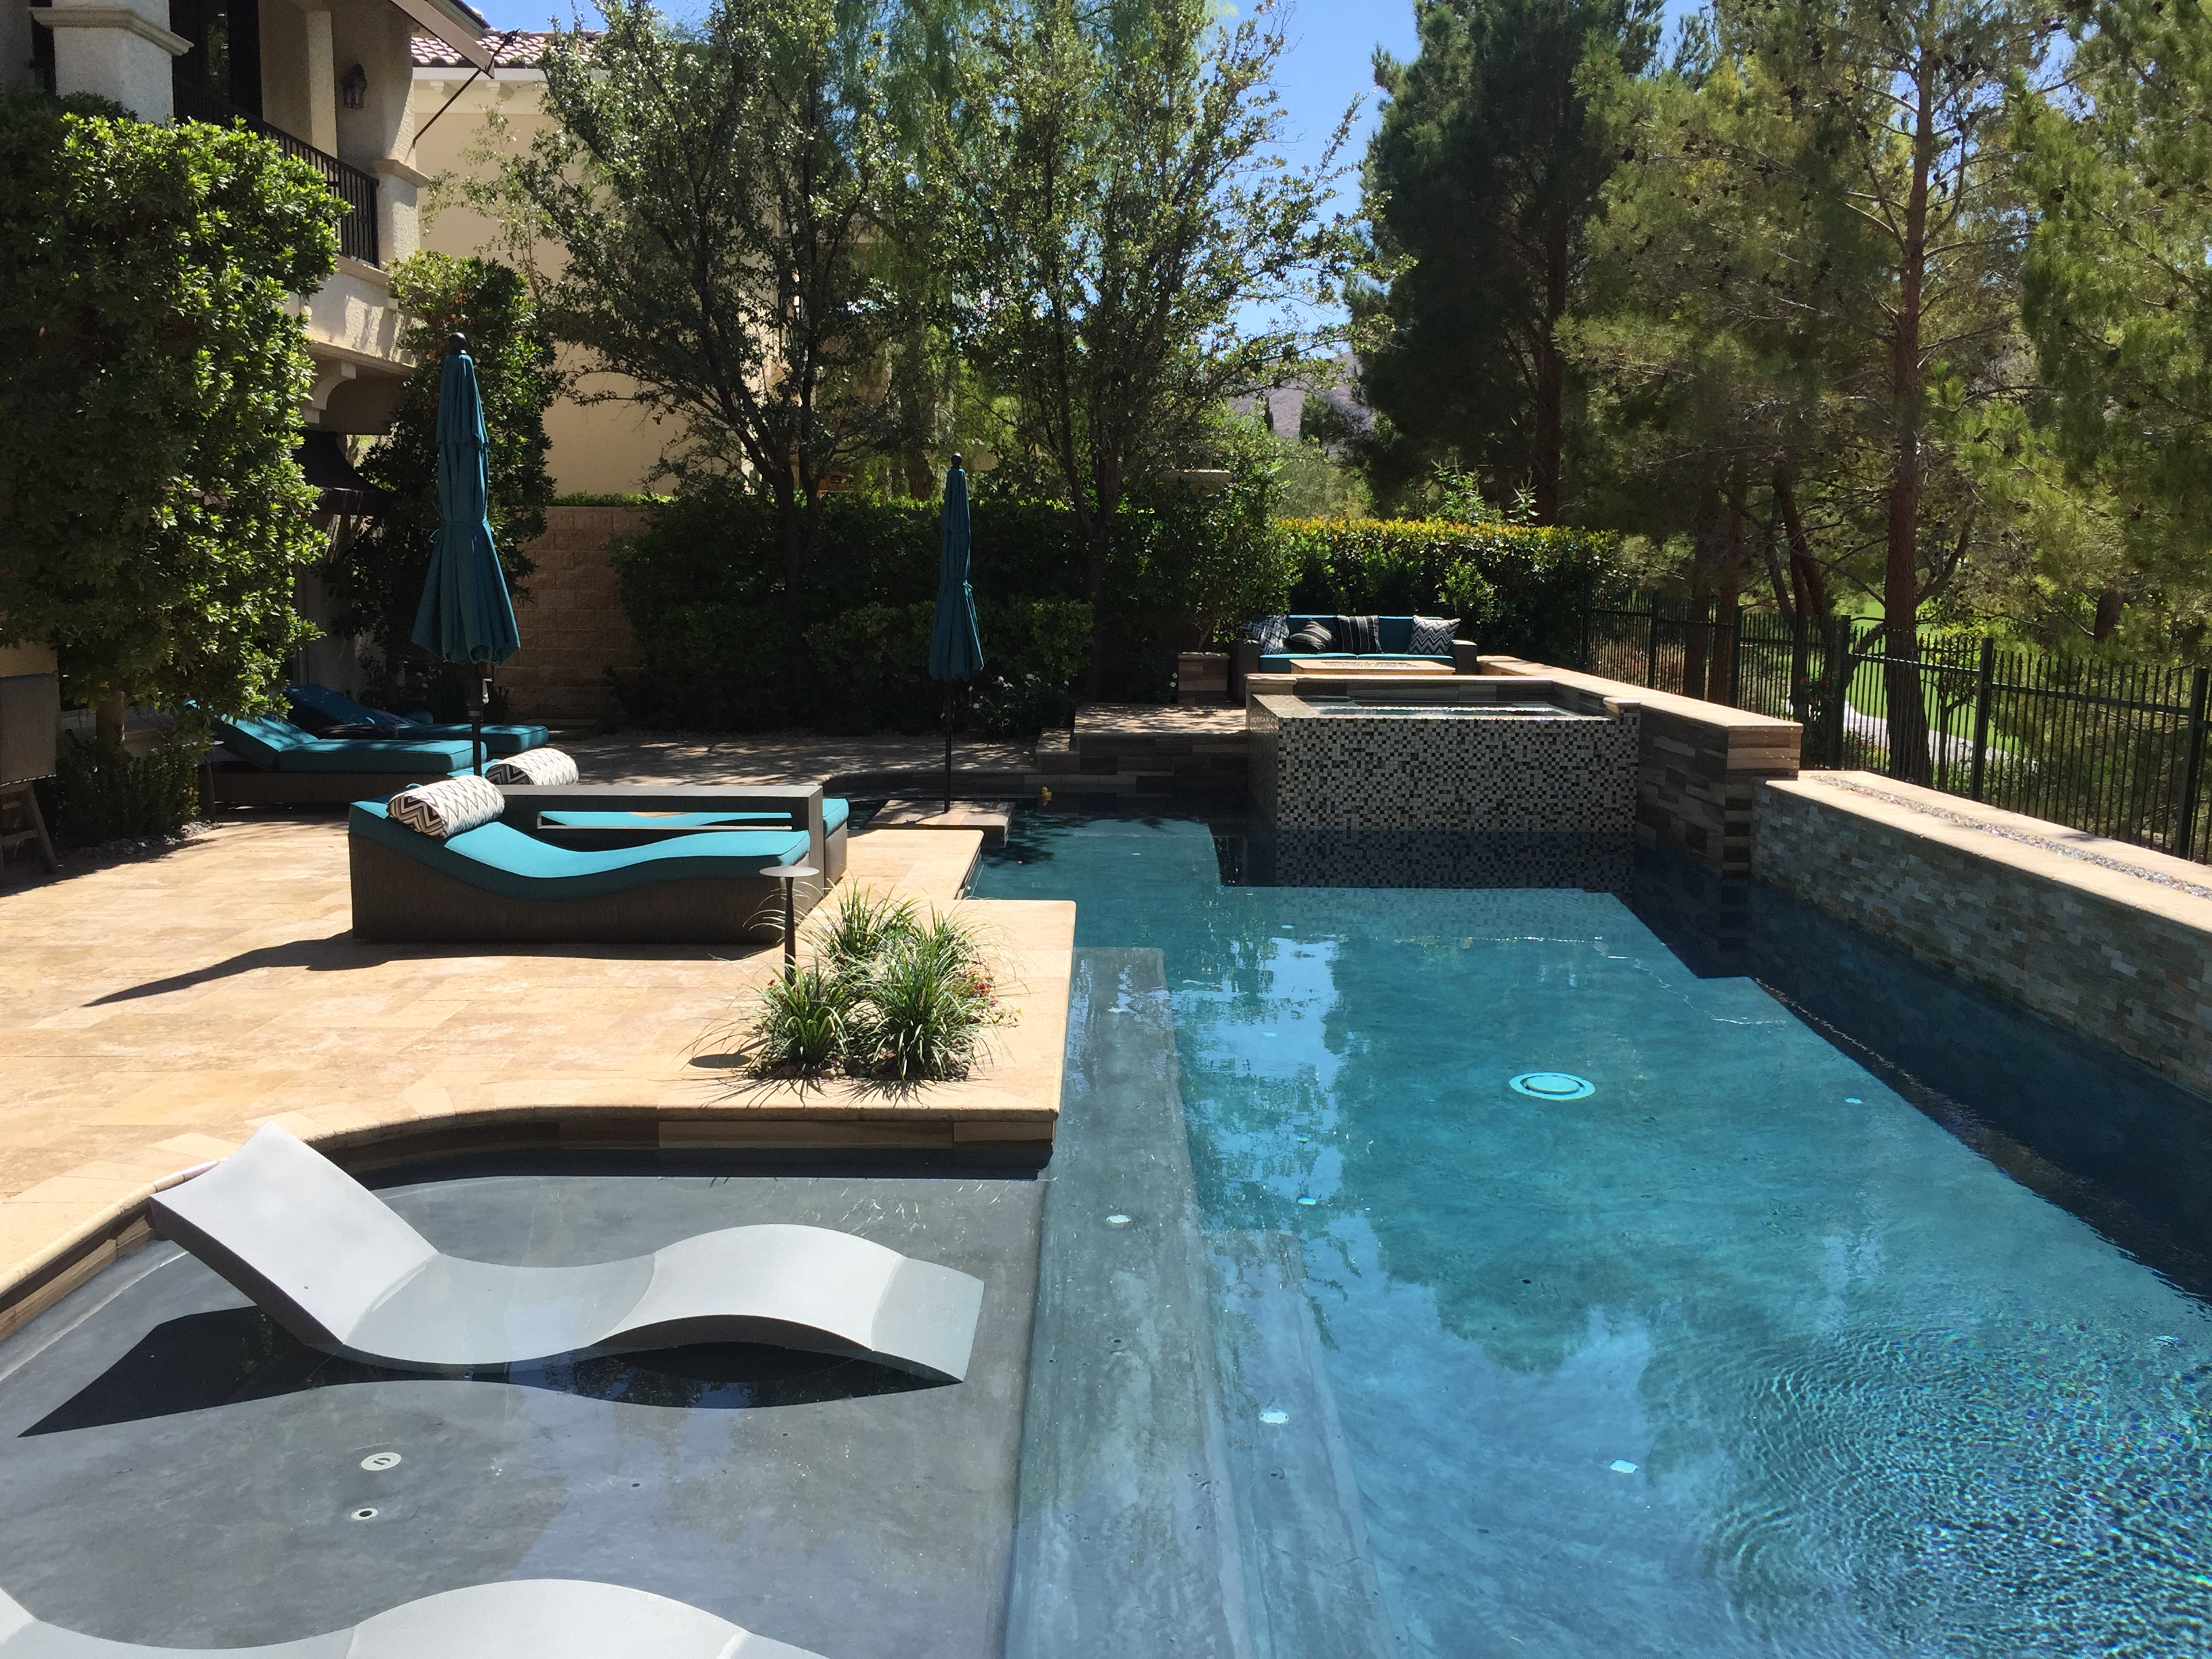 Las Vegas Backyard Landscaping Design Interesting Backyard Resort  Las Vegas Pool Design Pool Contractor Pool . 2017